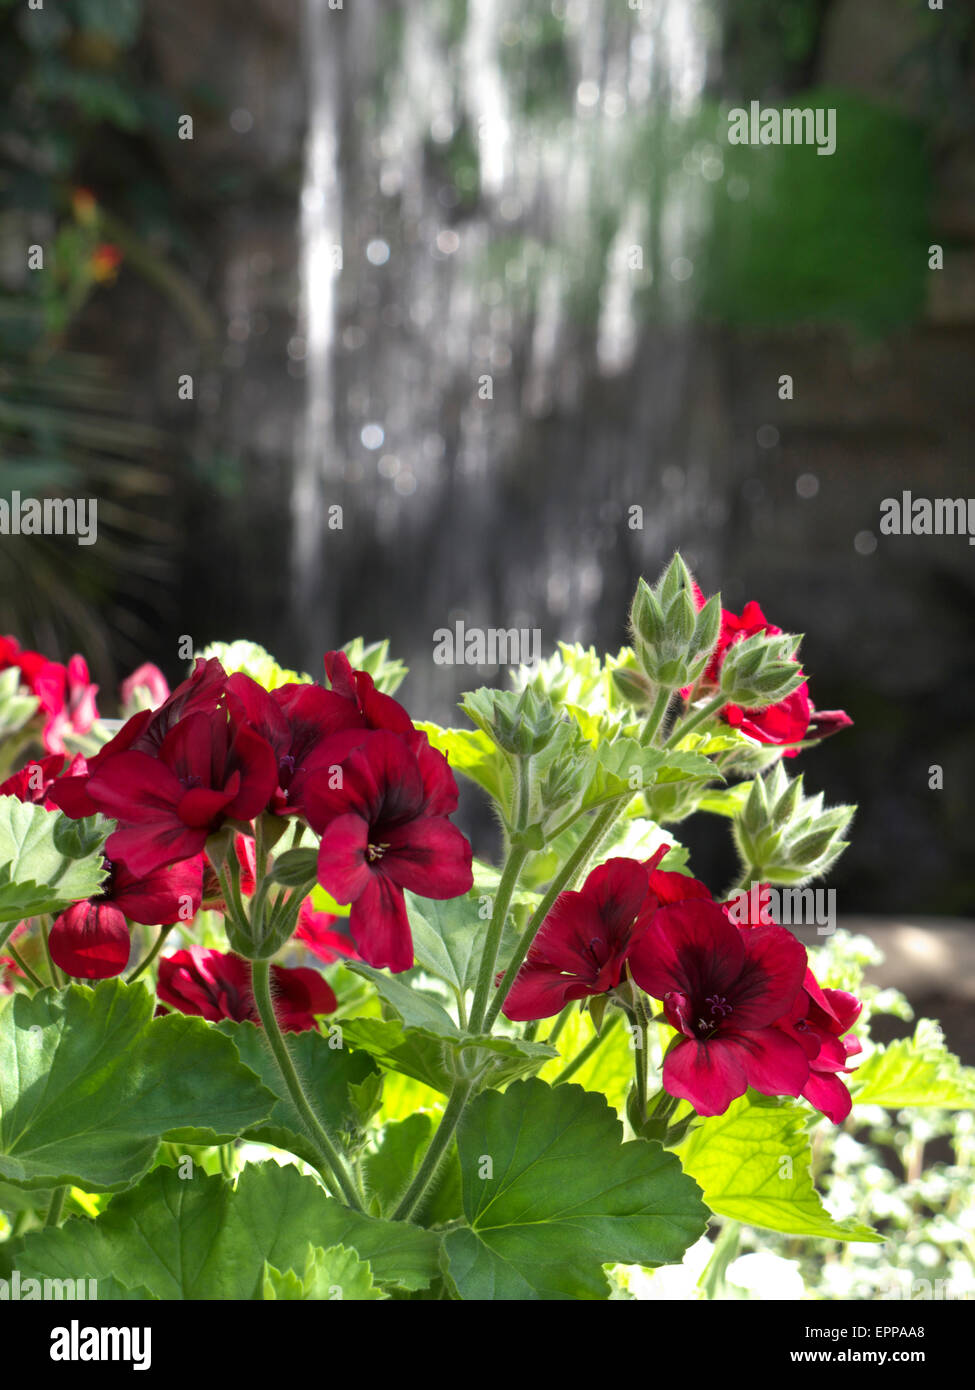 Close view on Pelargoniums growing in a lush tropical situation with waterfall behind - Stock Image